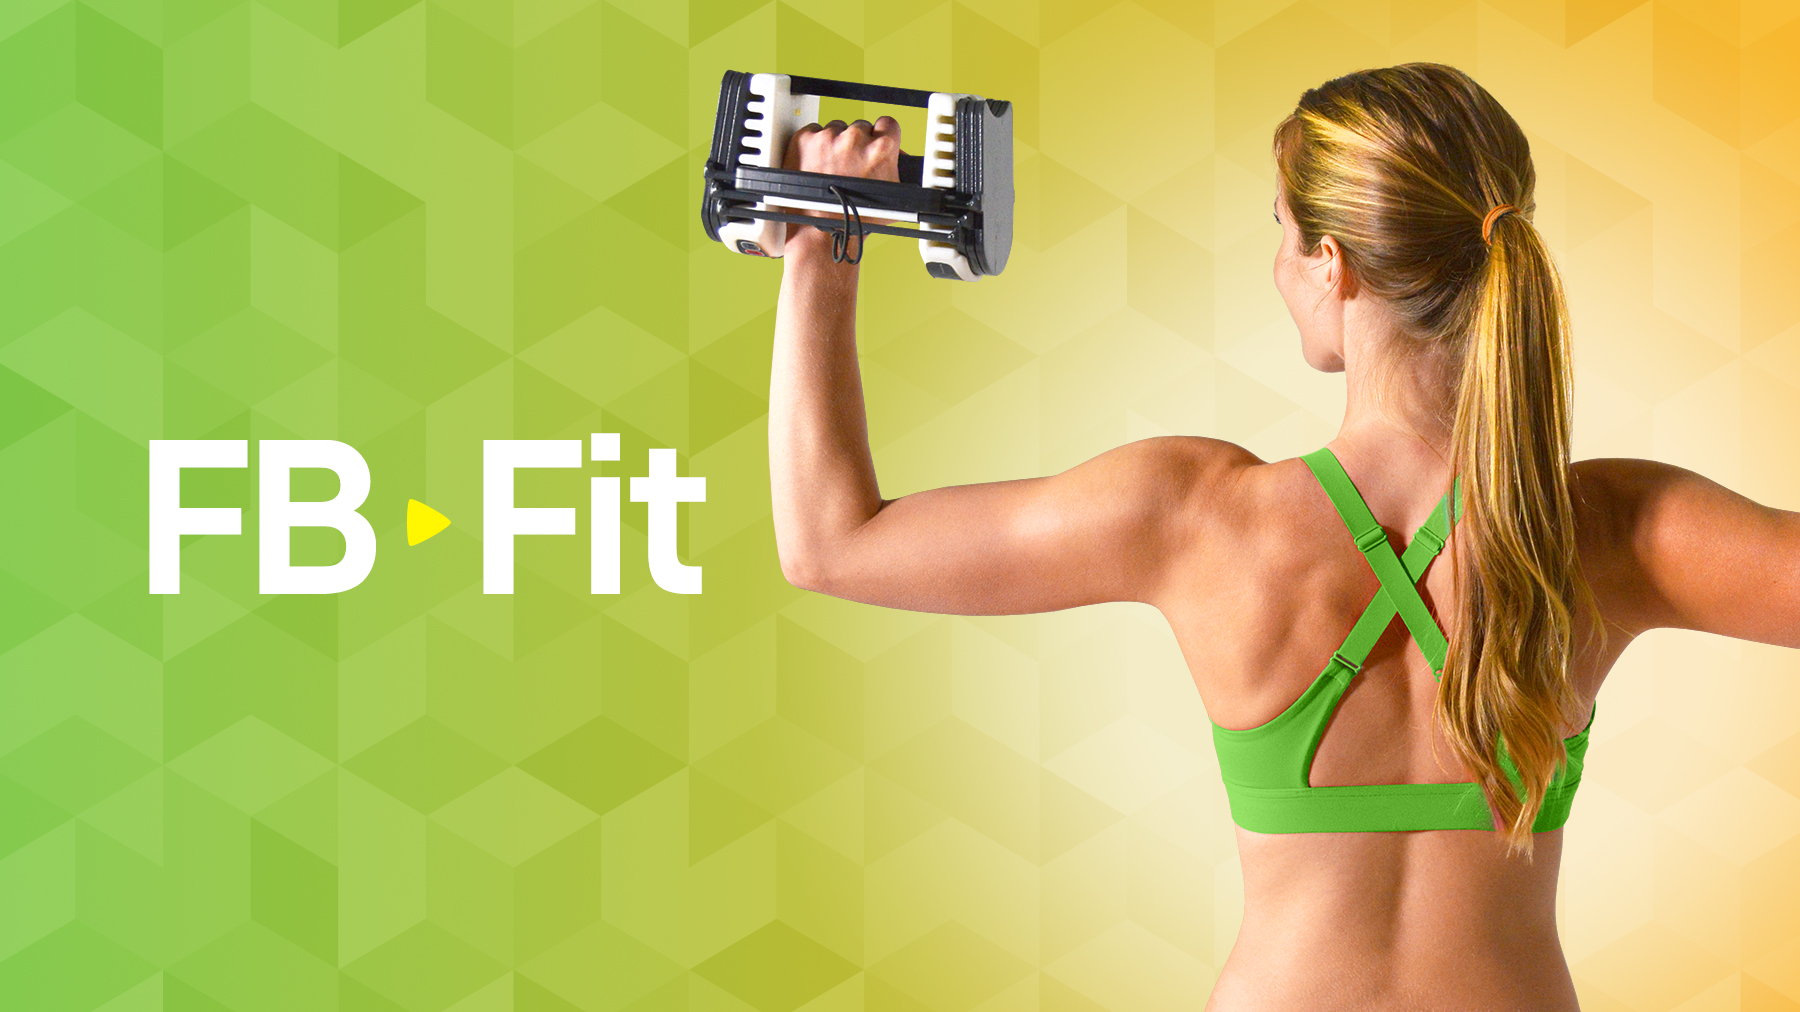 FB Fit - 8 Week Fat Loss Program to Lose Weight, Build ...